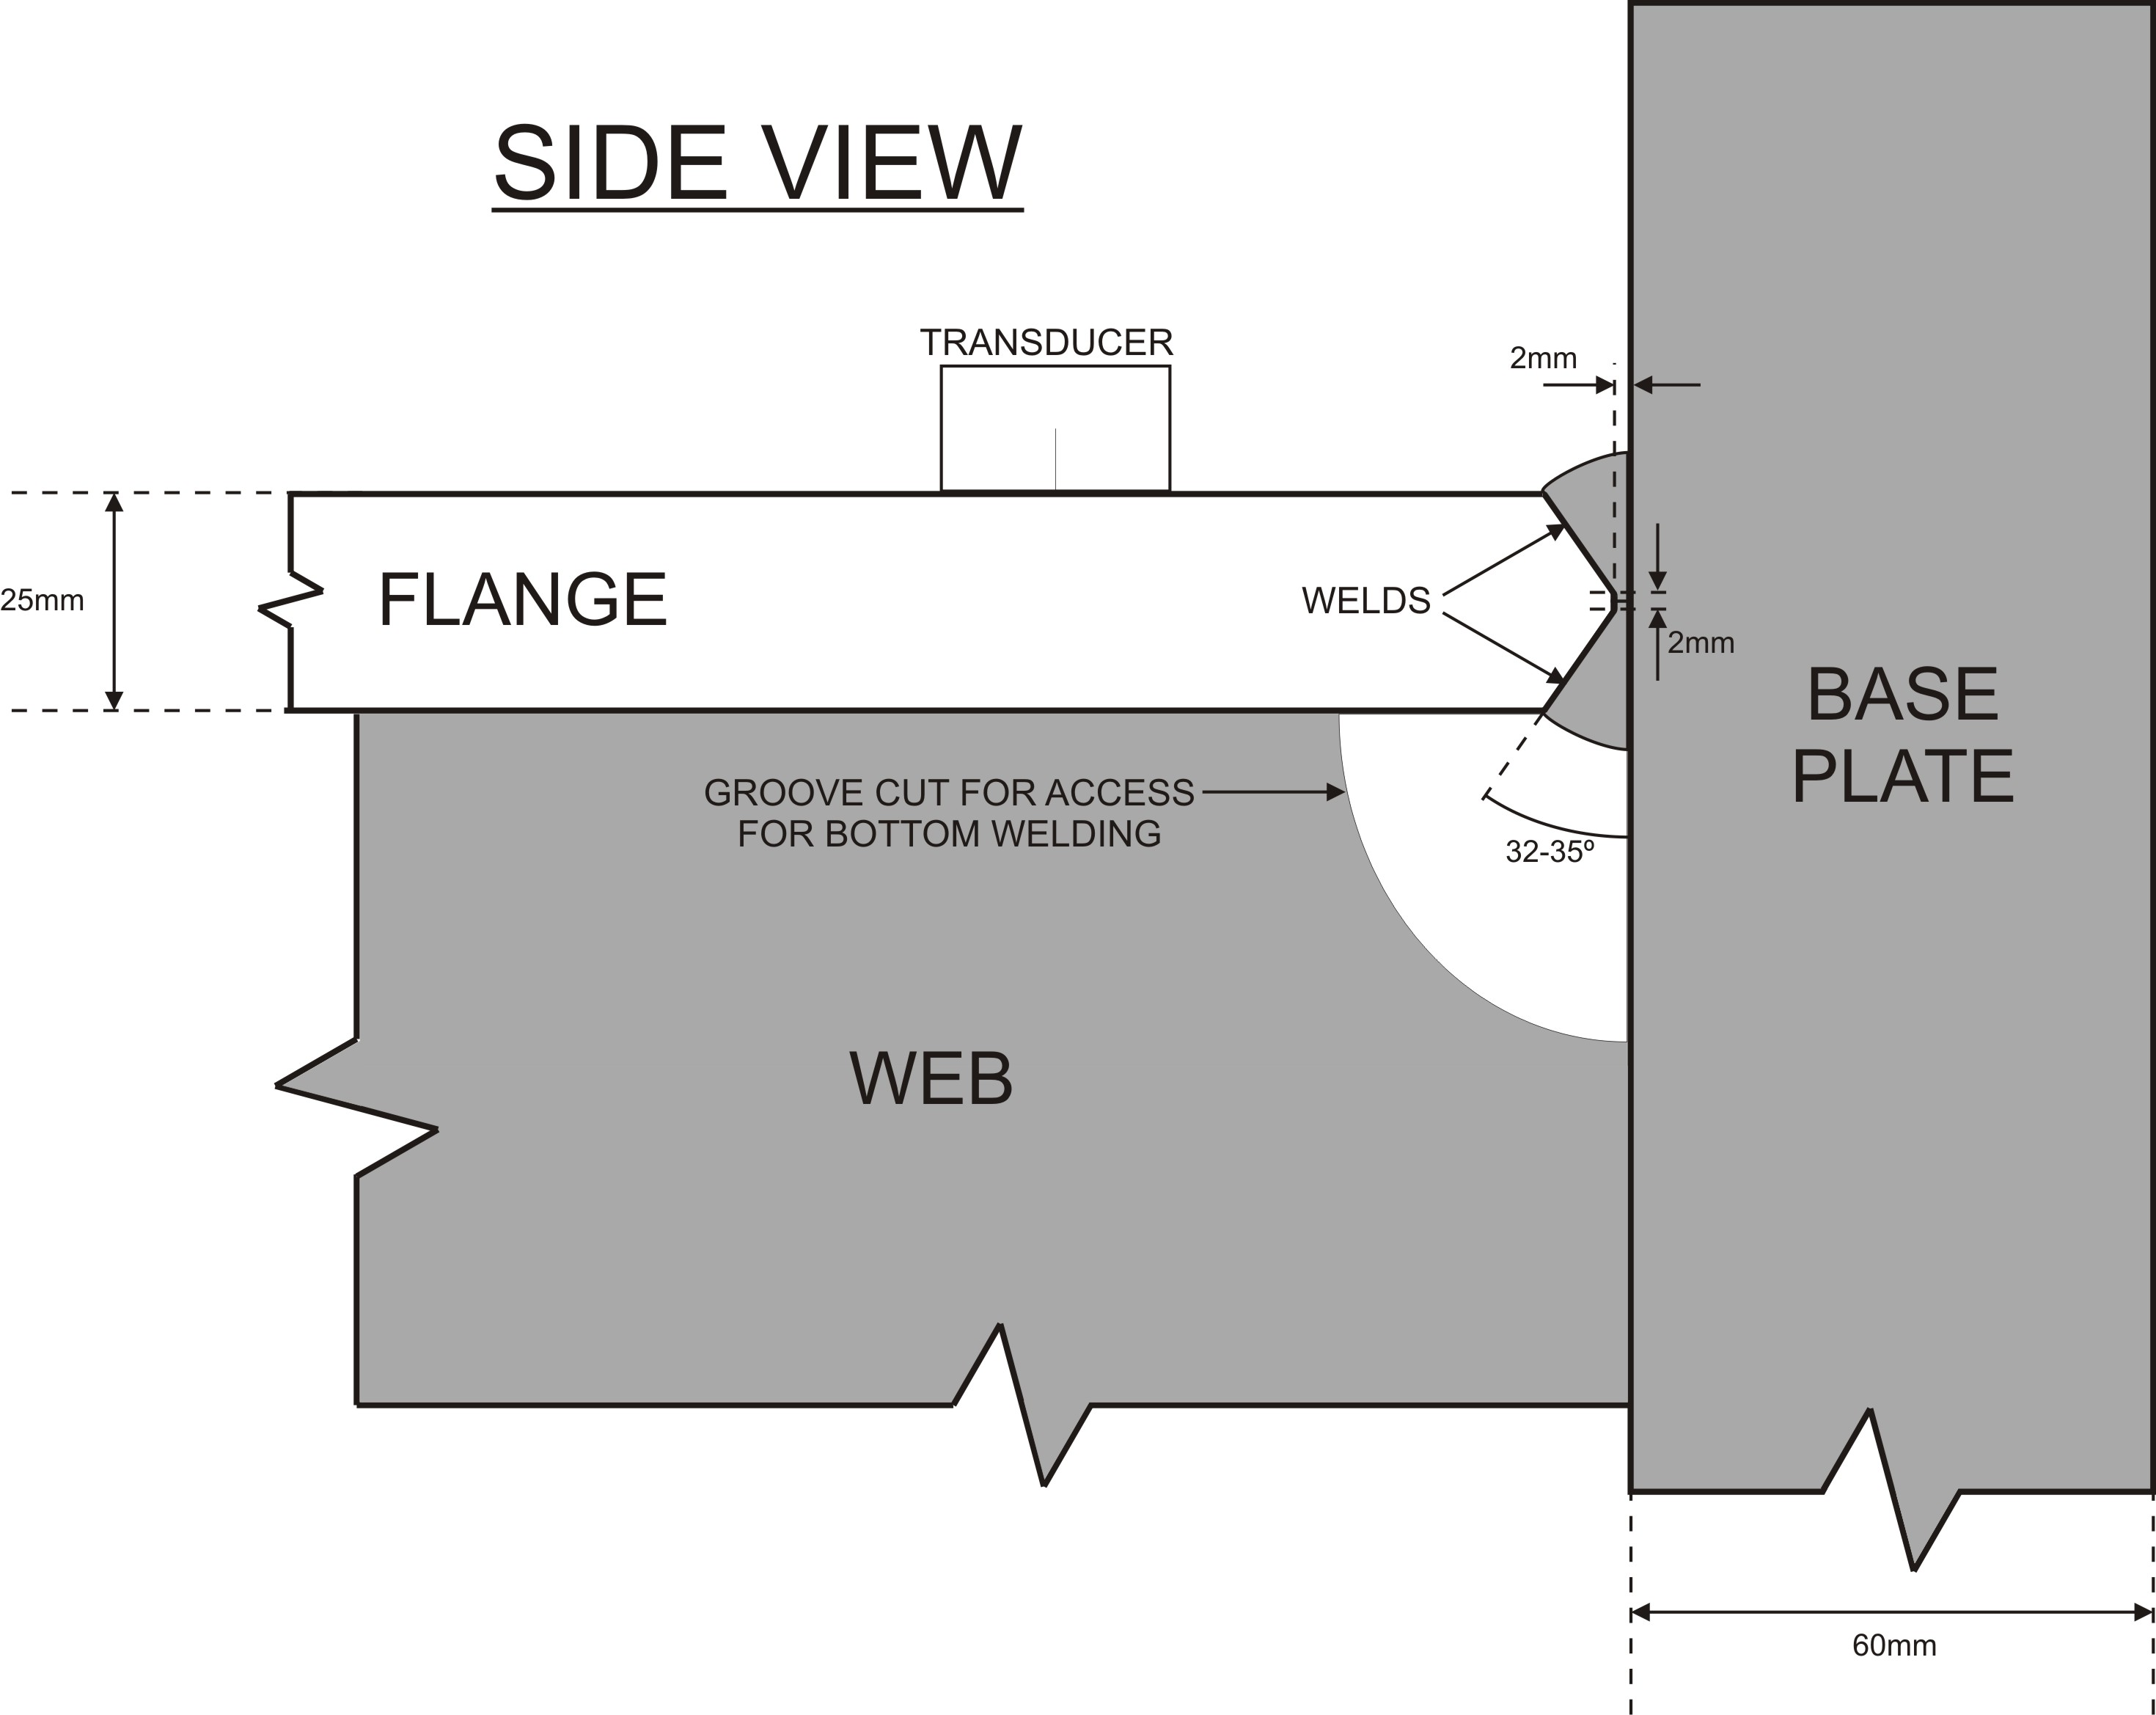 Ut Of Column To Base Plate Welding Defects Diagram I Have Uploaded An Image A Where The Beam Is Welded Fabricated In Refinery Area Which Will Be